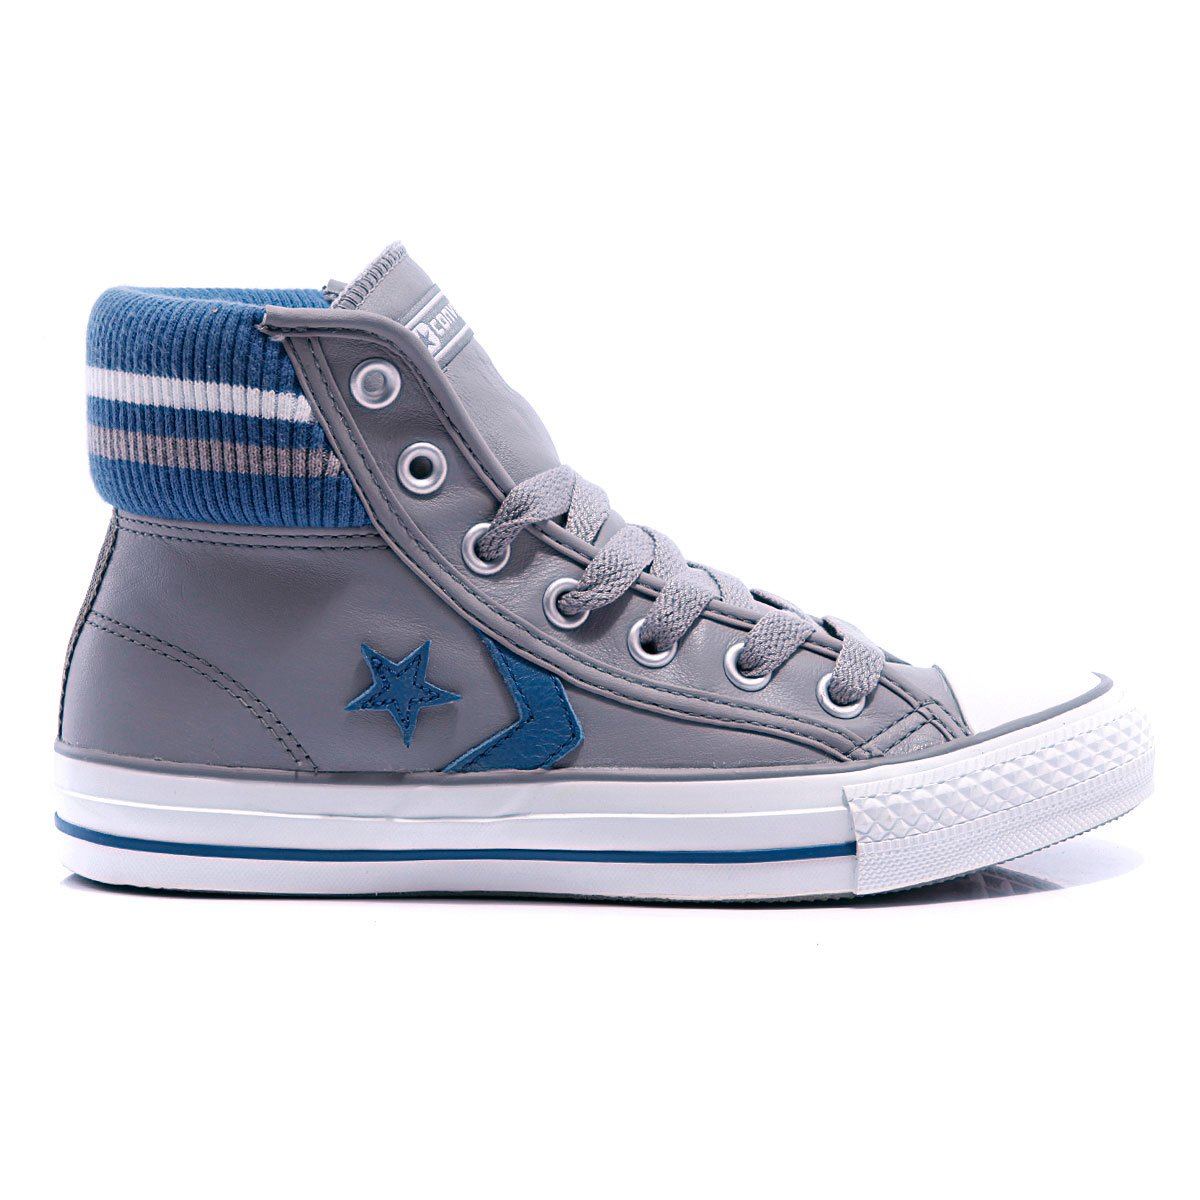 a55d35f3fb65 ... hot converse star player cuff rib unisex leather mid phaeton grey white  blue abfff 99055